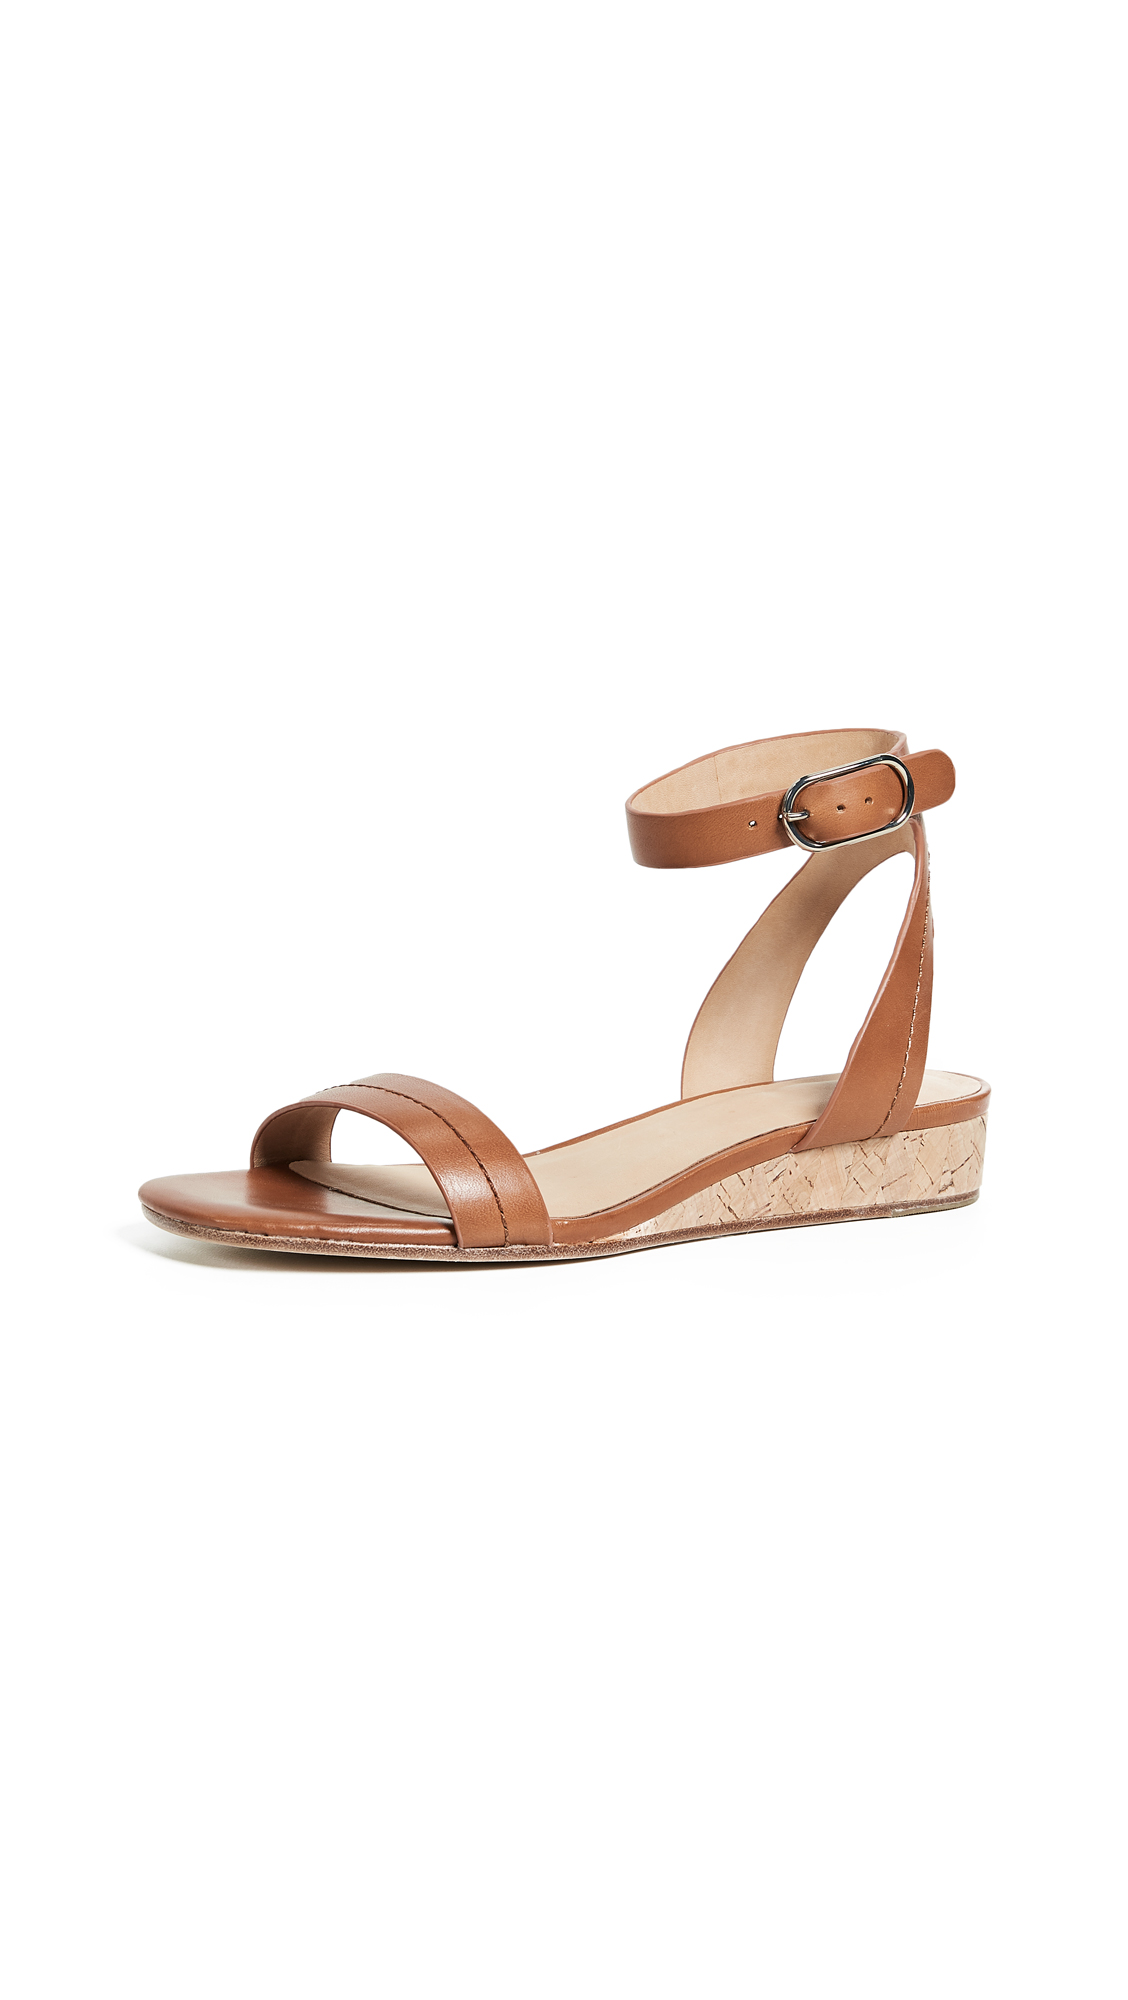 Joie Faedra Sandals